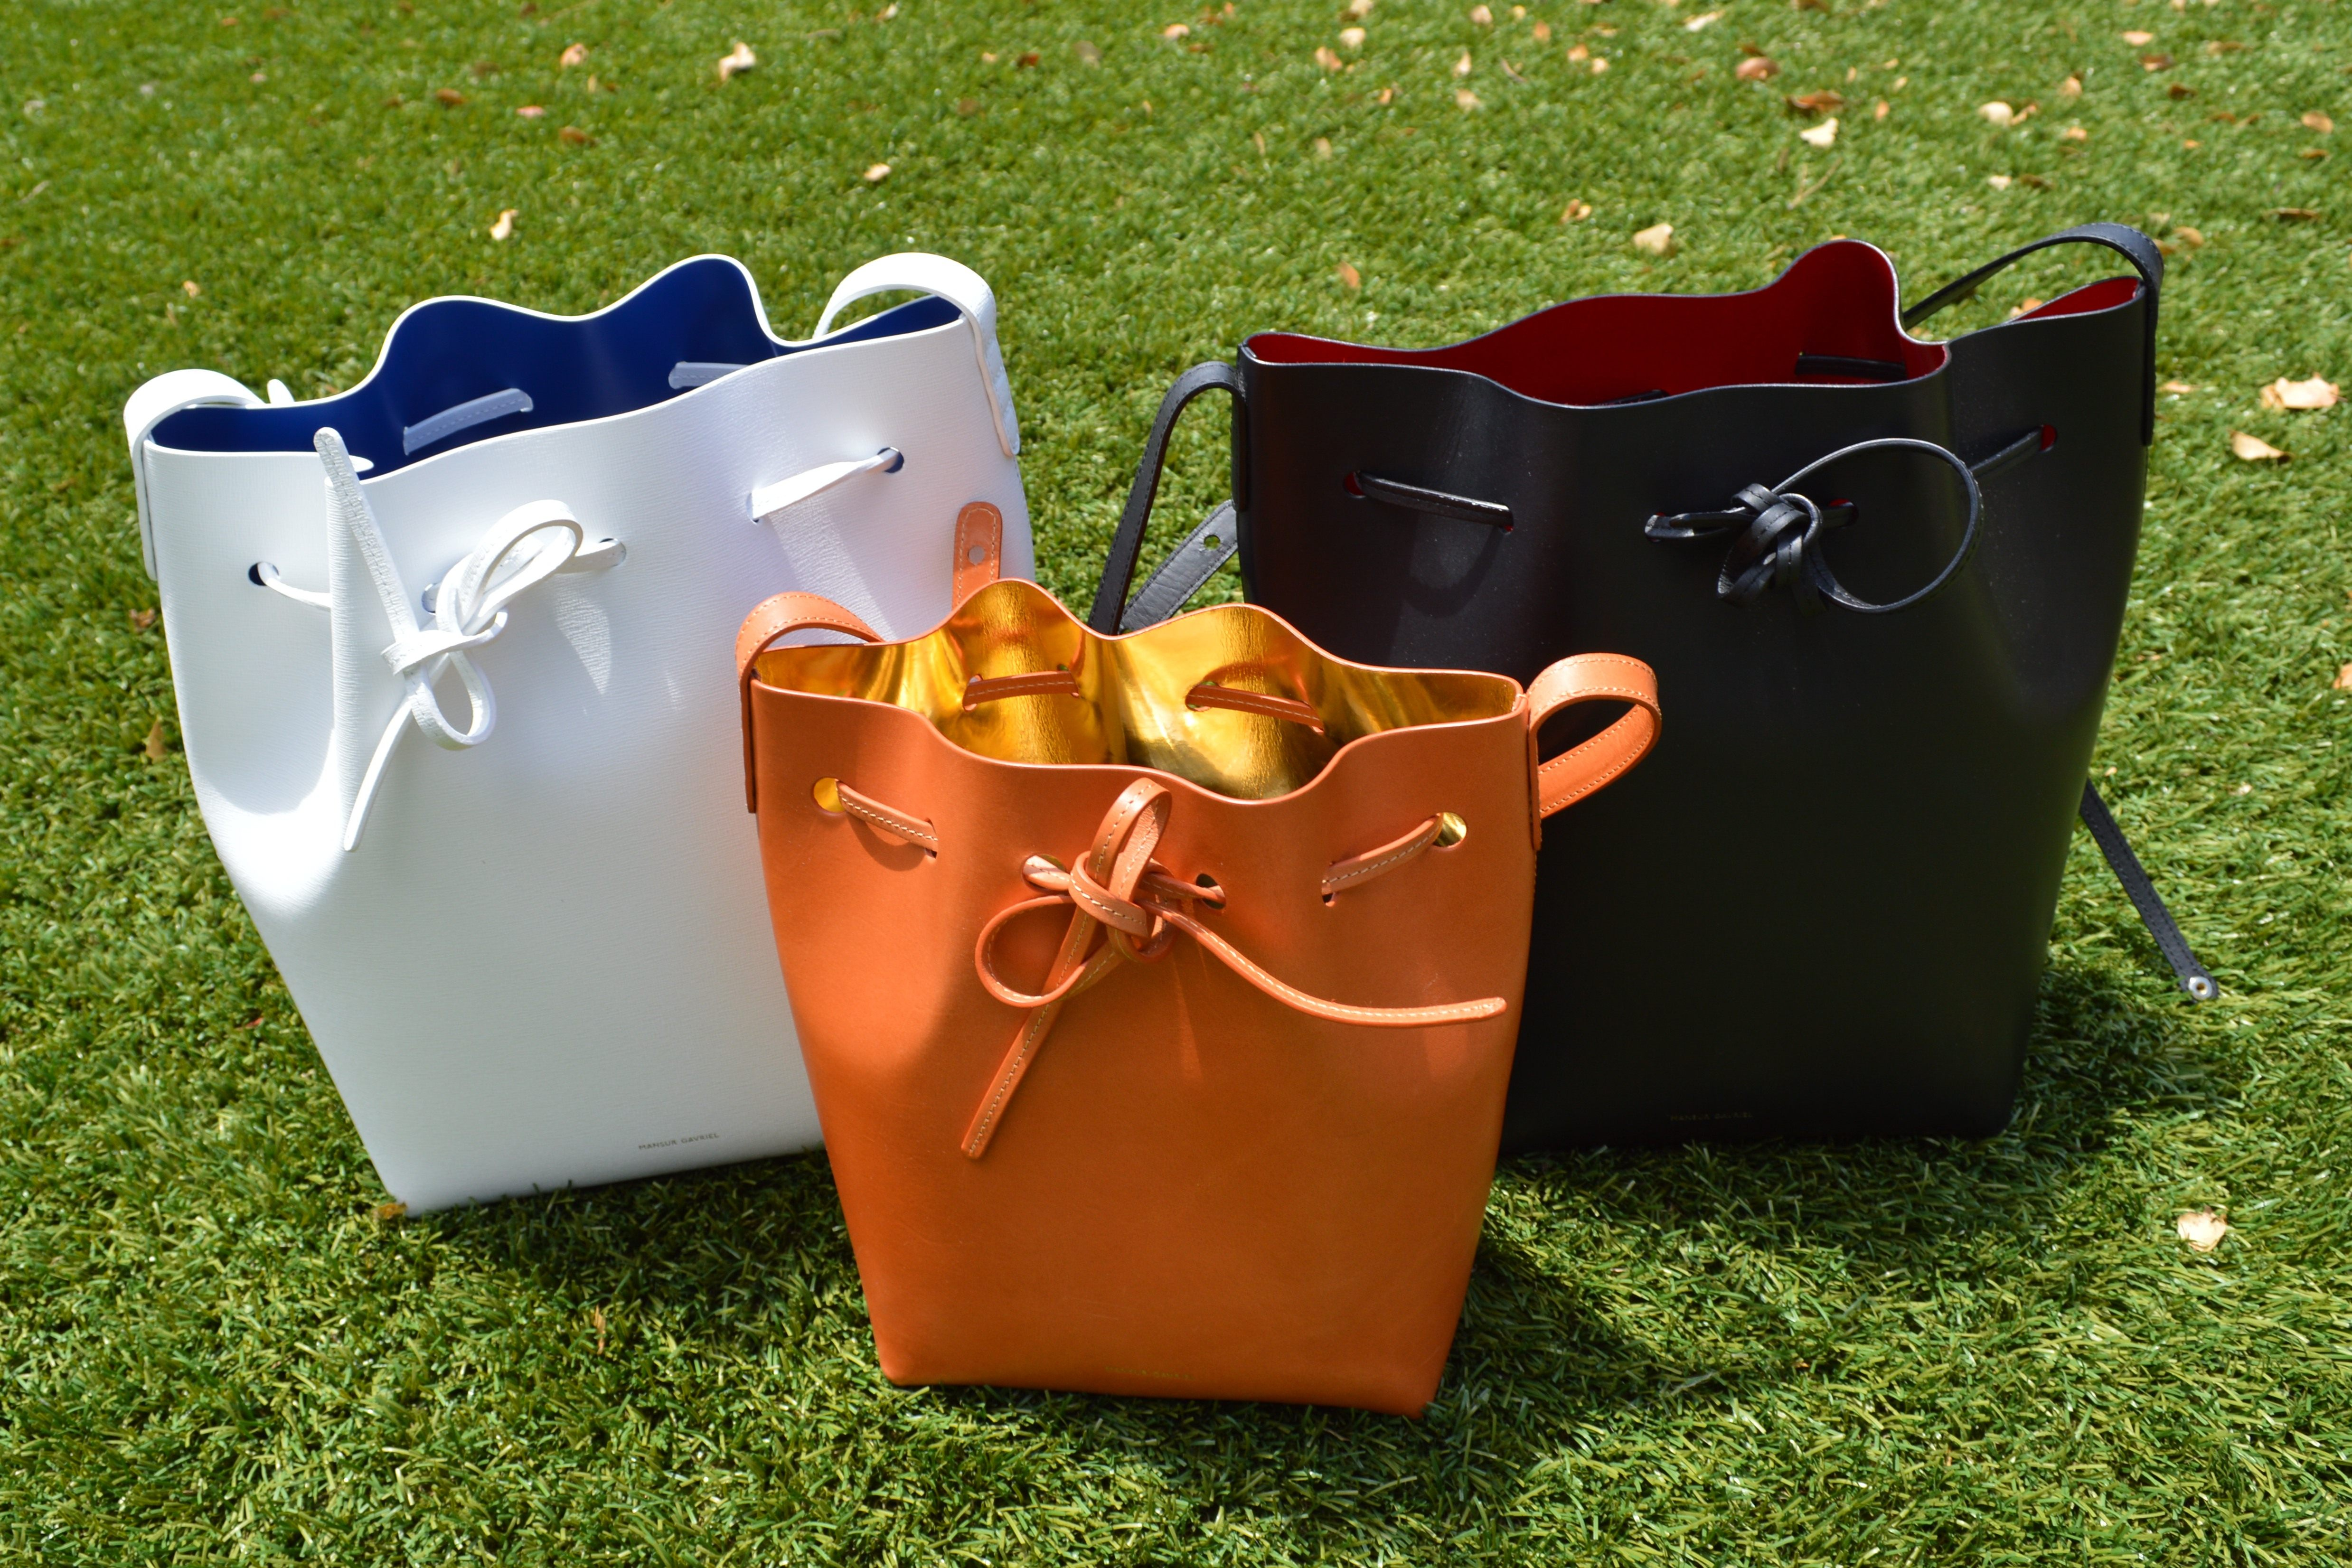 f338d5f9ac61 Pictured  Mansur Gavriel drawstring bucket bags. Black bag is vegetable  tanned leather. White bag is saffiano leather. Mini bag is vegetable tanned  leather.